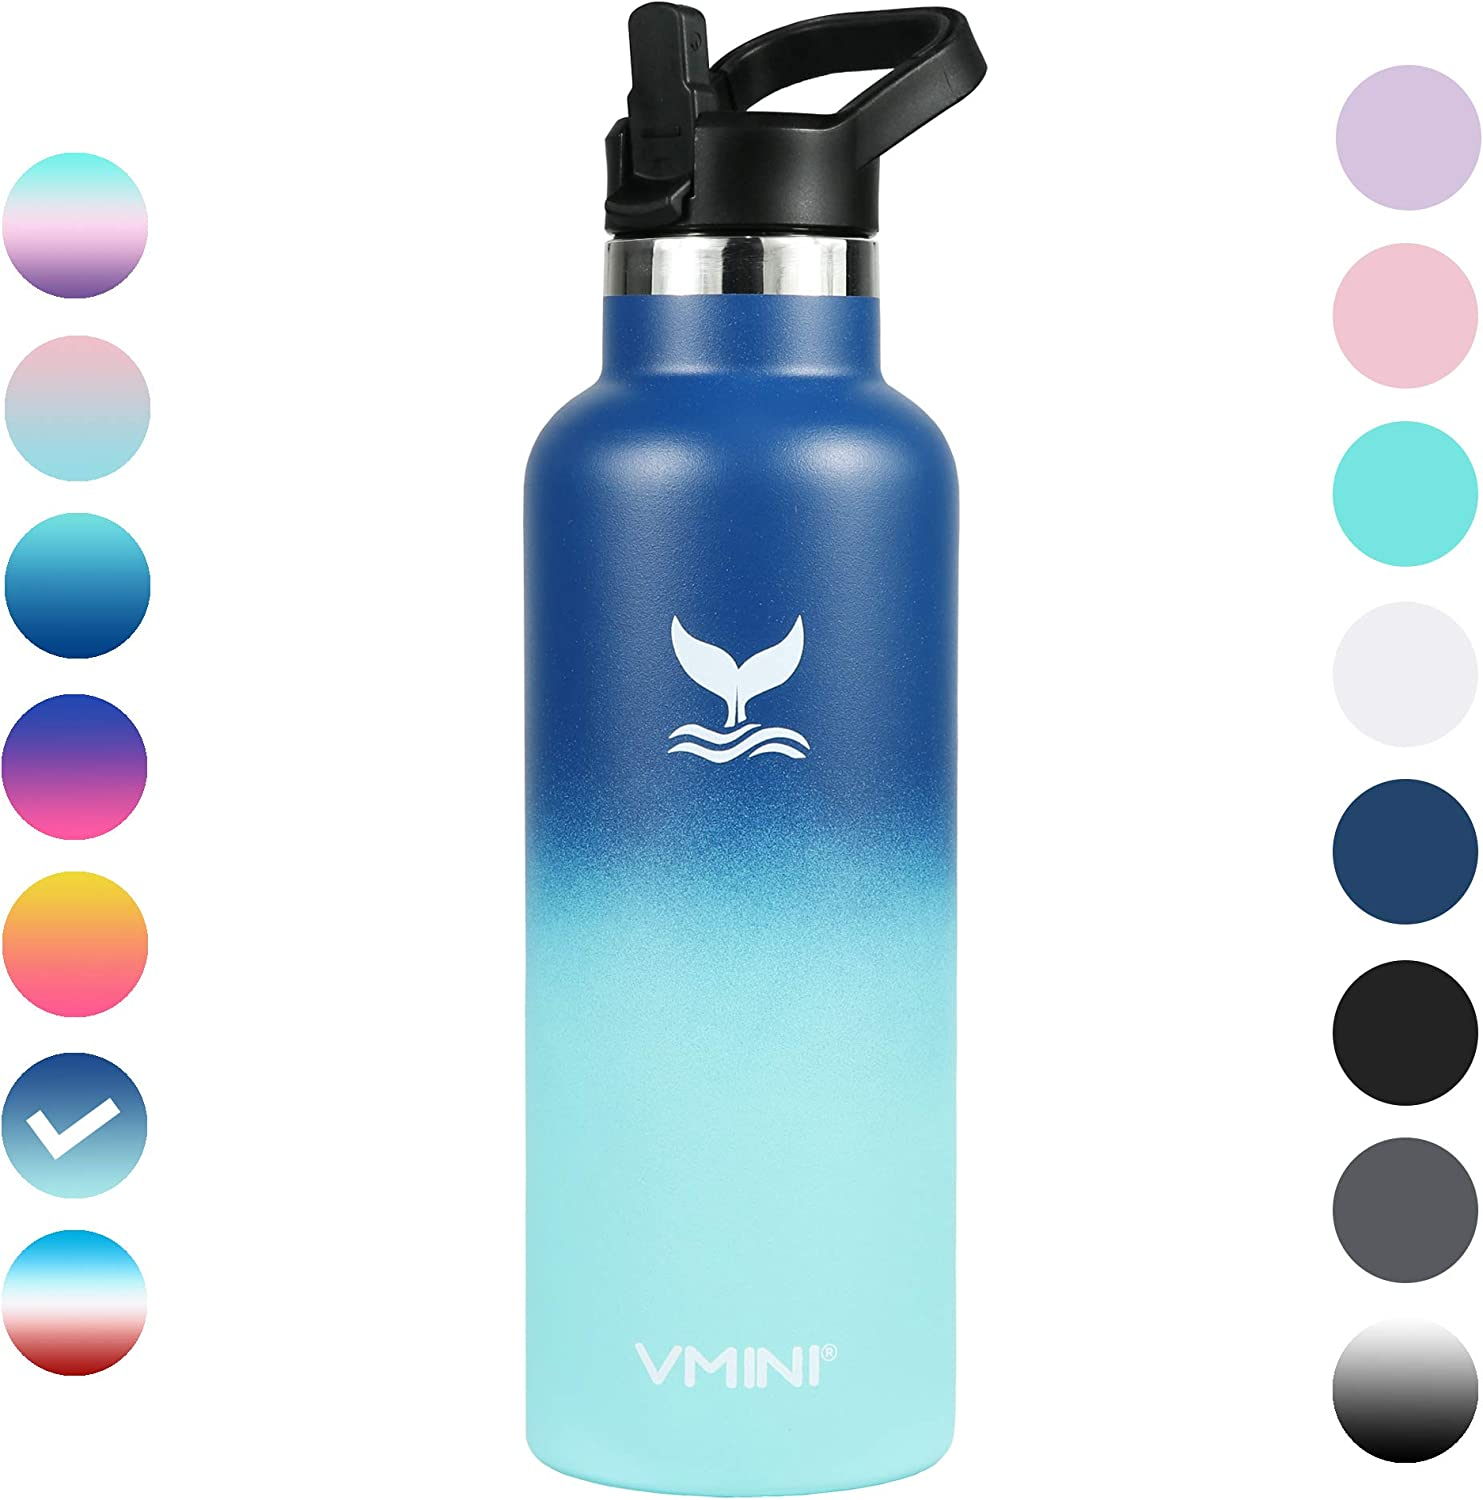 Vmini Water Bottle - Standard Mouth Stainless Steel & Vacuum Insulated Bottle, New Straw Lid with Wide Handle, Gradient Blue+Mint & 22 oz